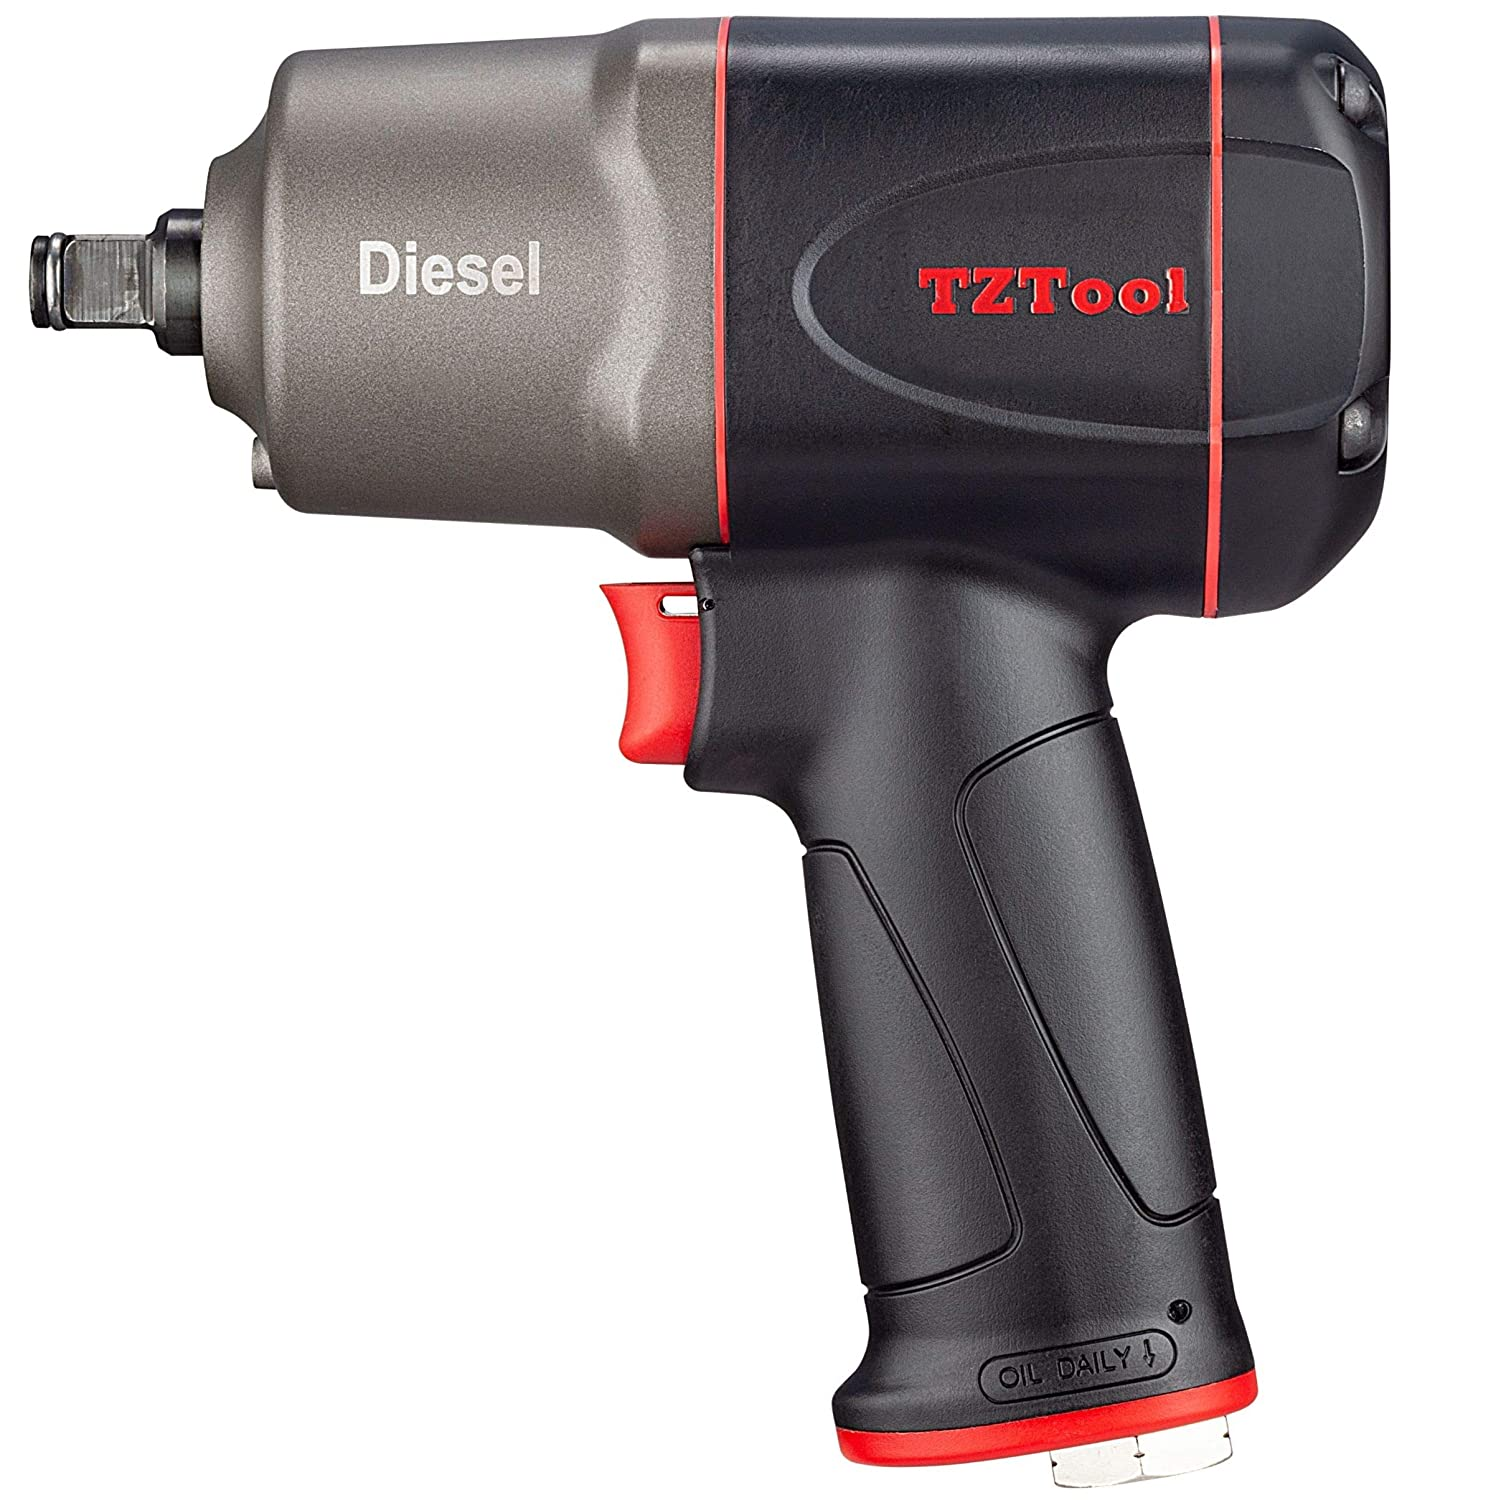 TZTool 1200 All new Diesel 1 2 Impact wrench, Ultimate torque